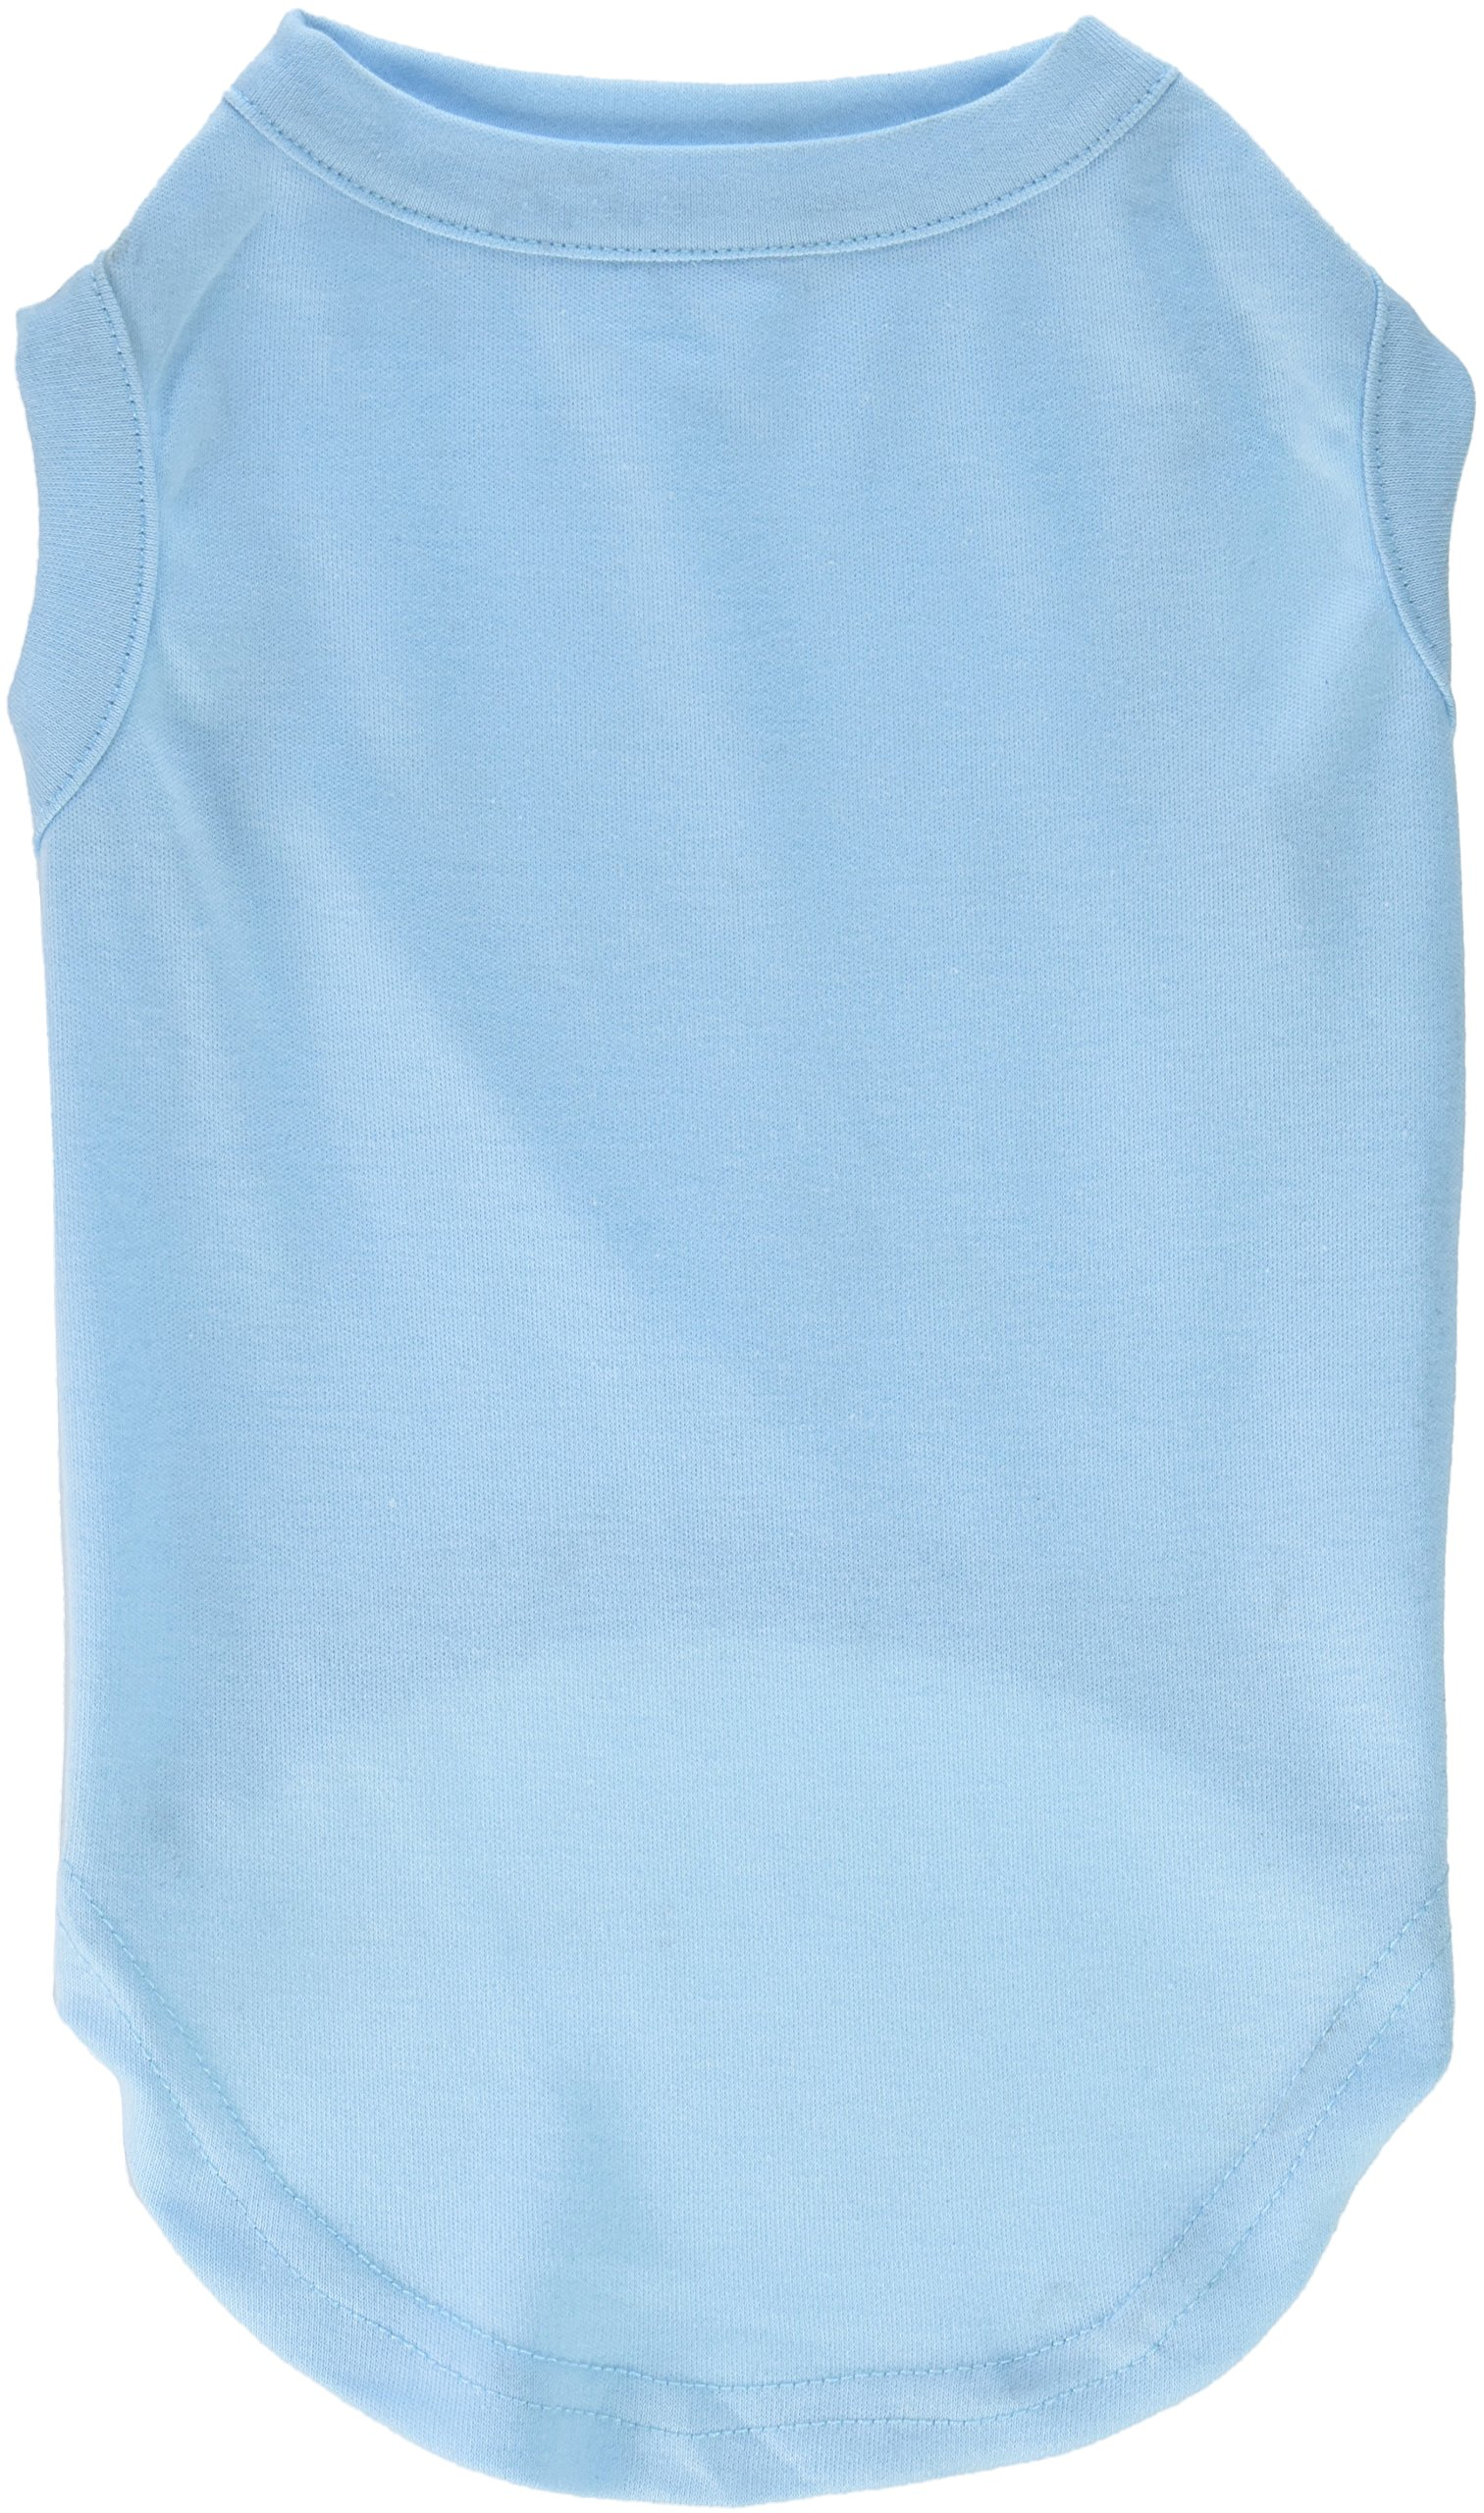 Mirage Pet Products 14-Inch Plain Shirts, Large, Baby Blue